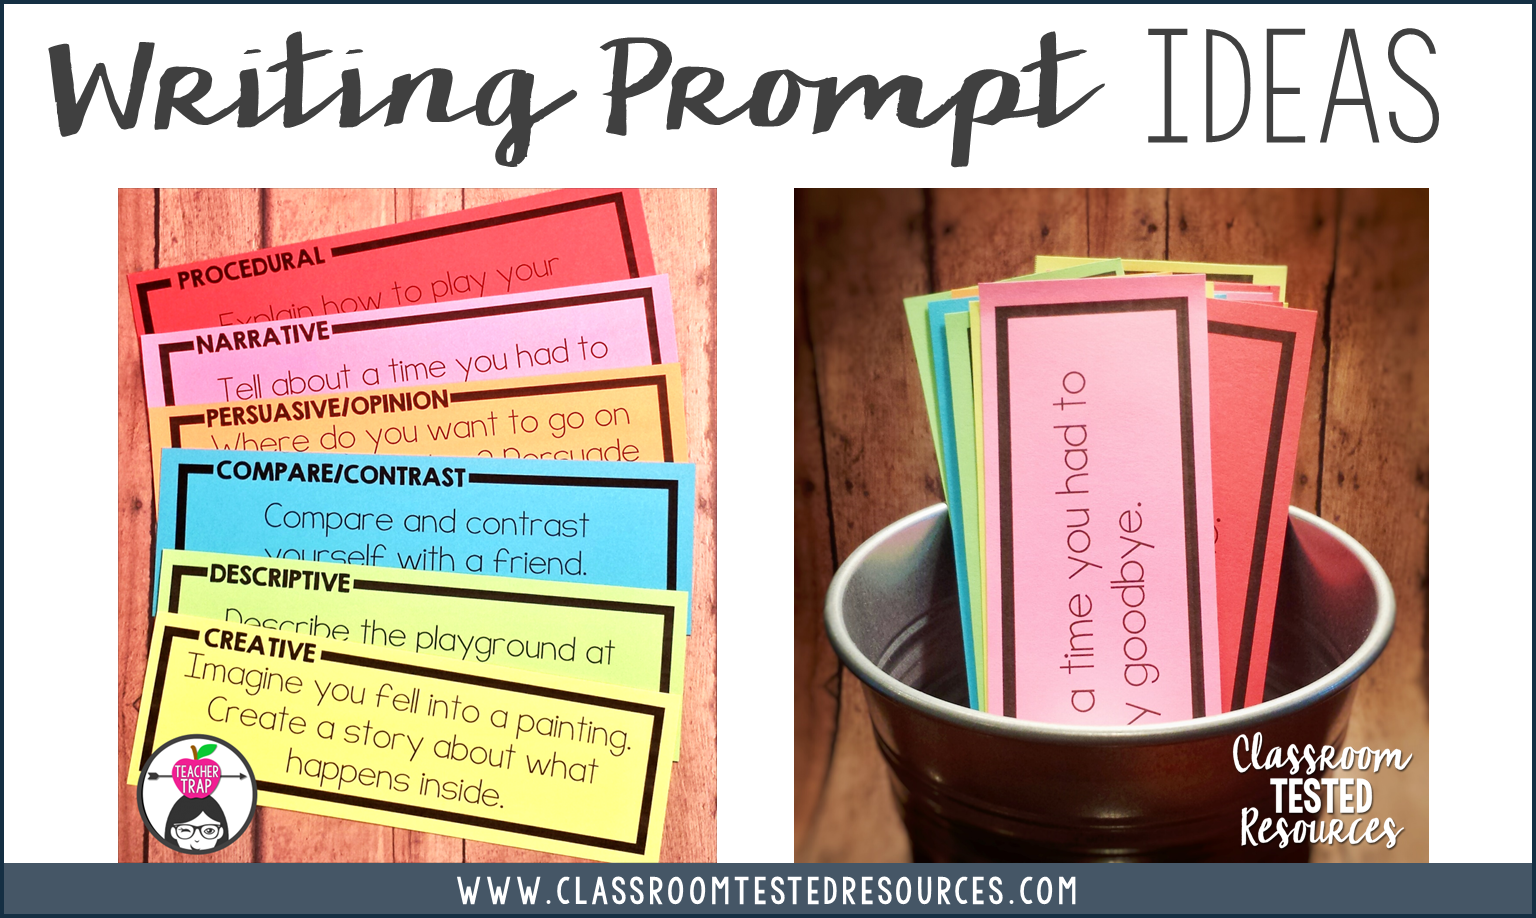 essay writing prompt ideas